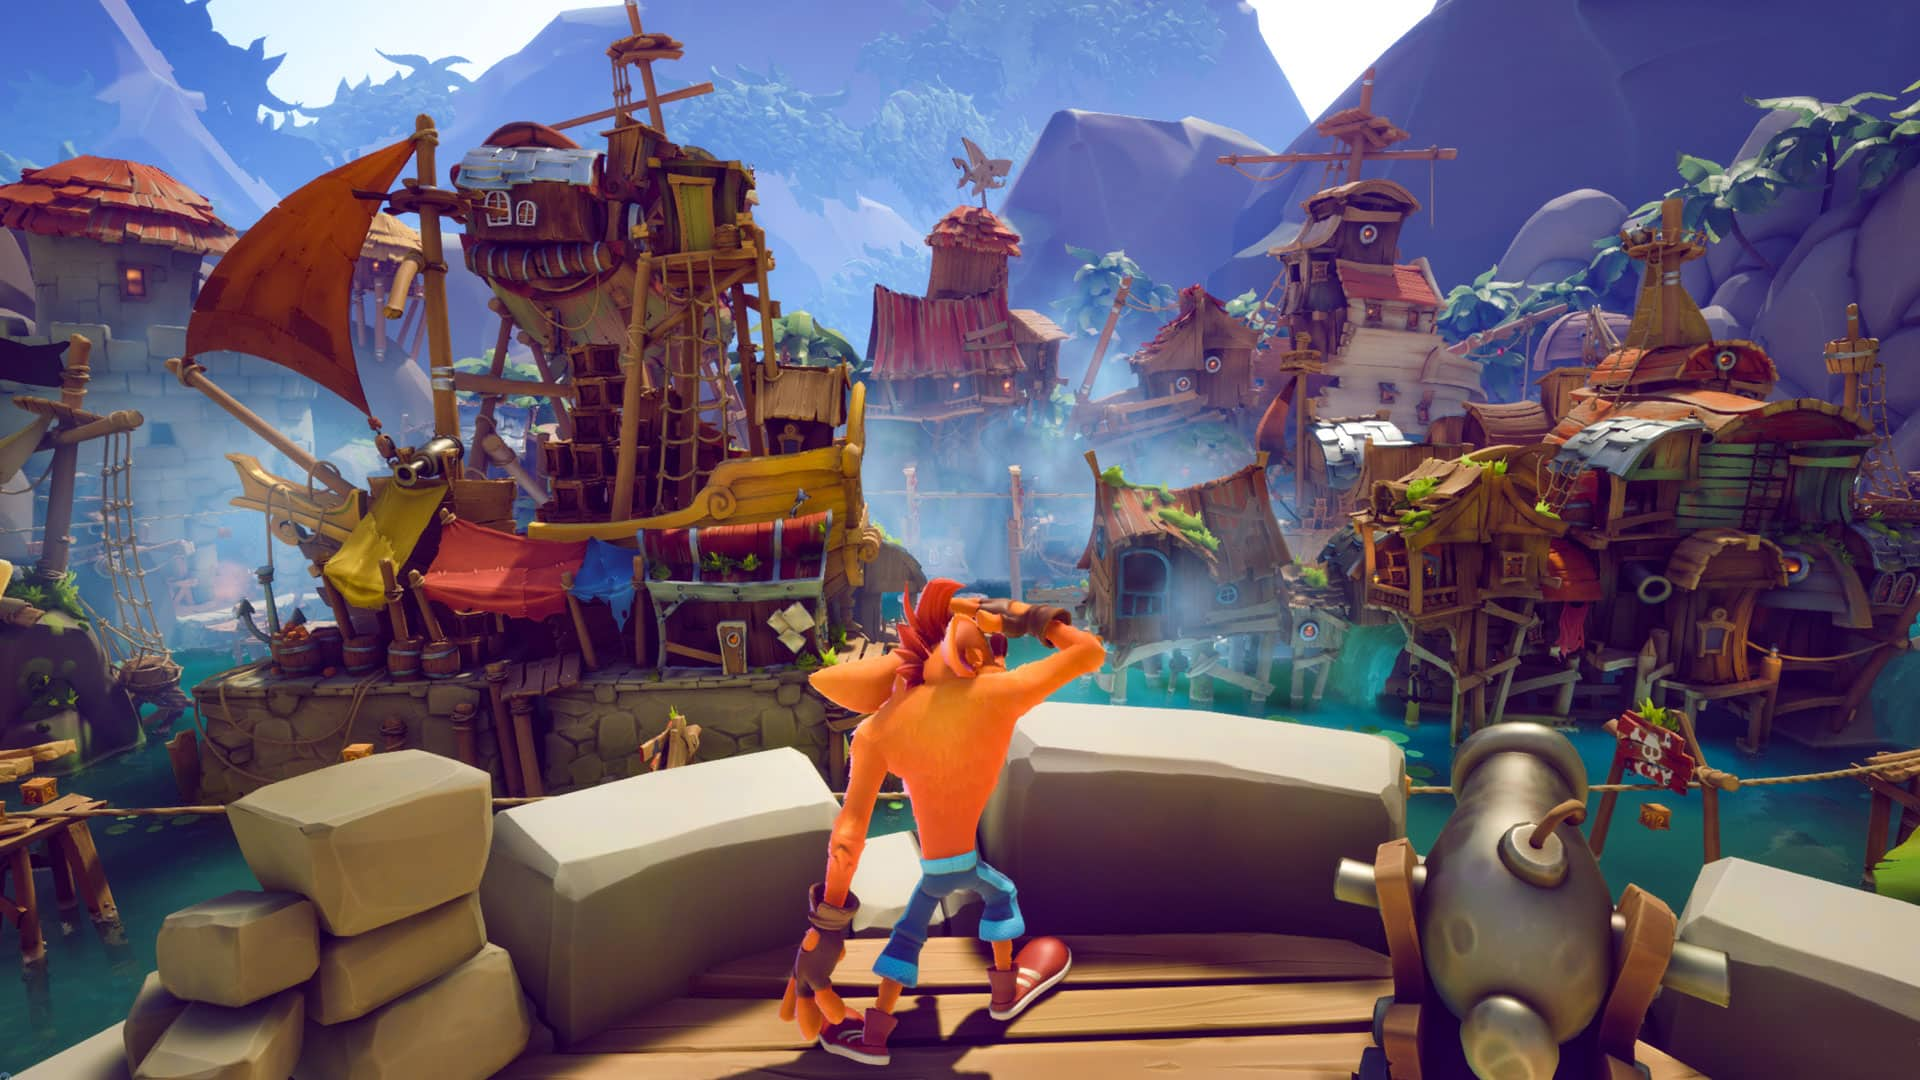 activision toys for bob trailer Crash Bandicoot 4: It's About Time